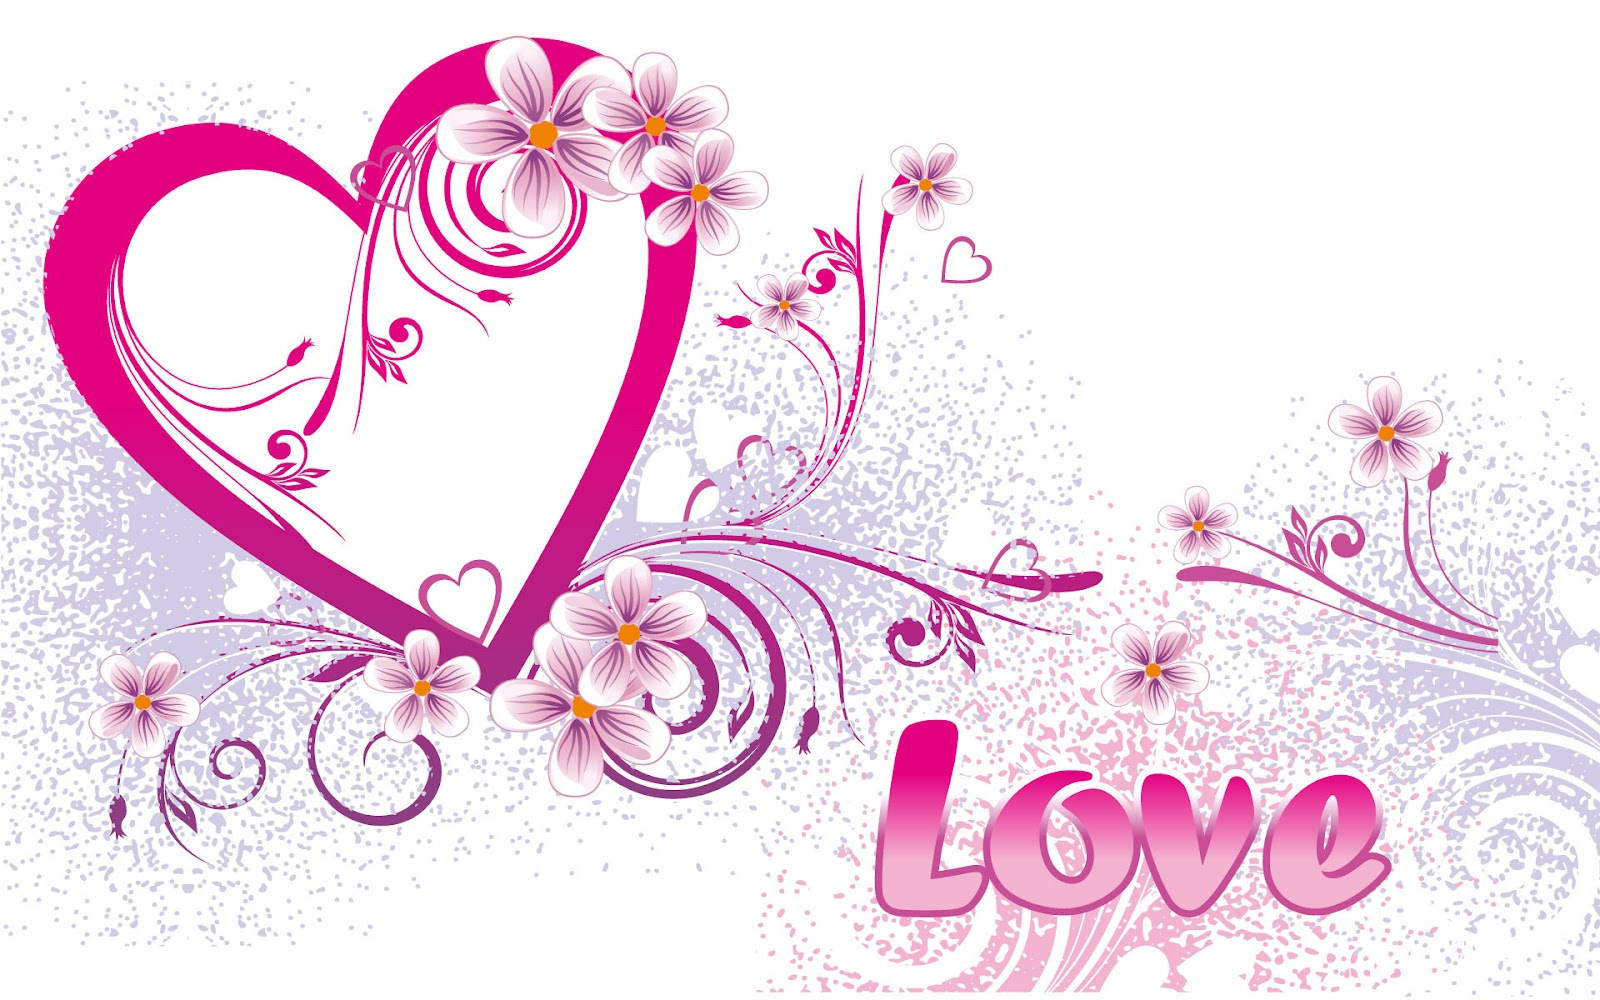 Wallpaper Love Gambar Cinta Paling Romantis Gambar Foto Wallpaper